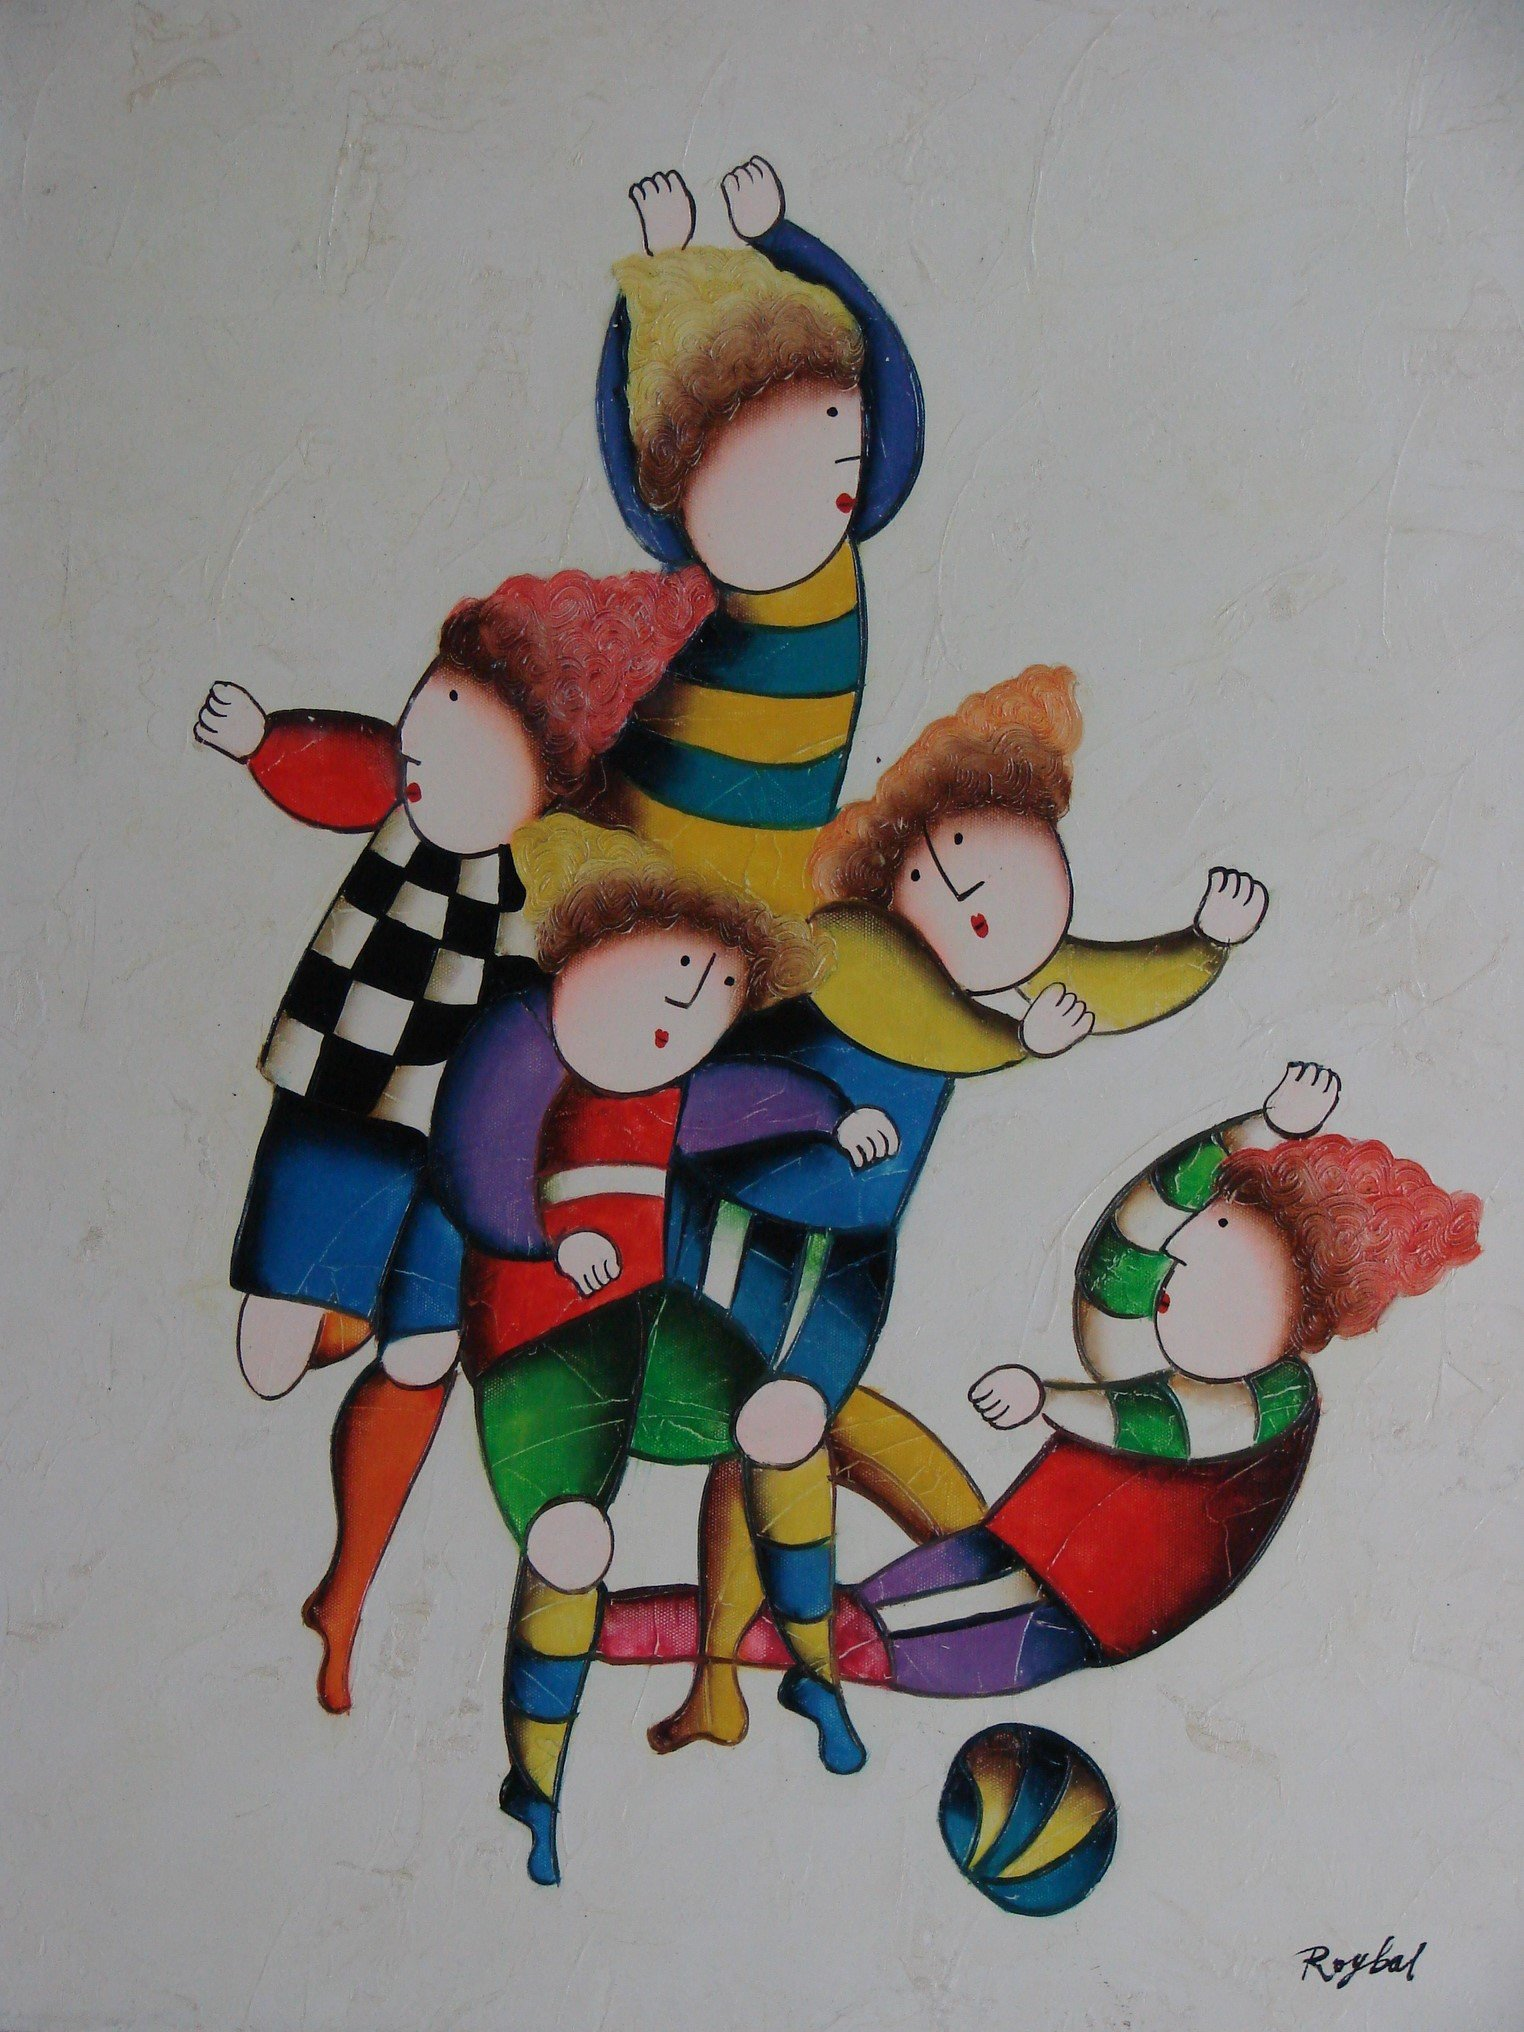 Children at Play Oil Painting by Roybal 20'' x 24'' DSC06831 by WorldOilPaintings